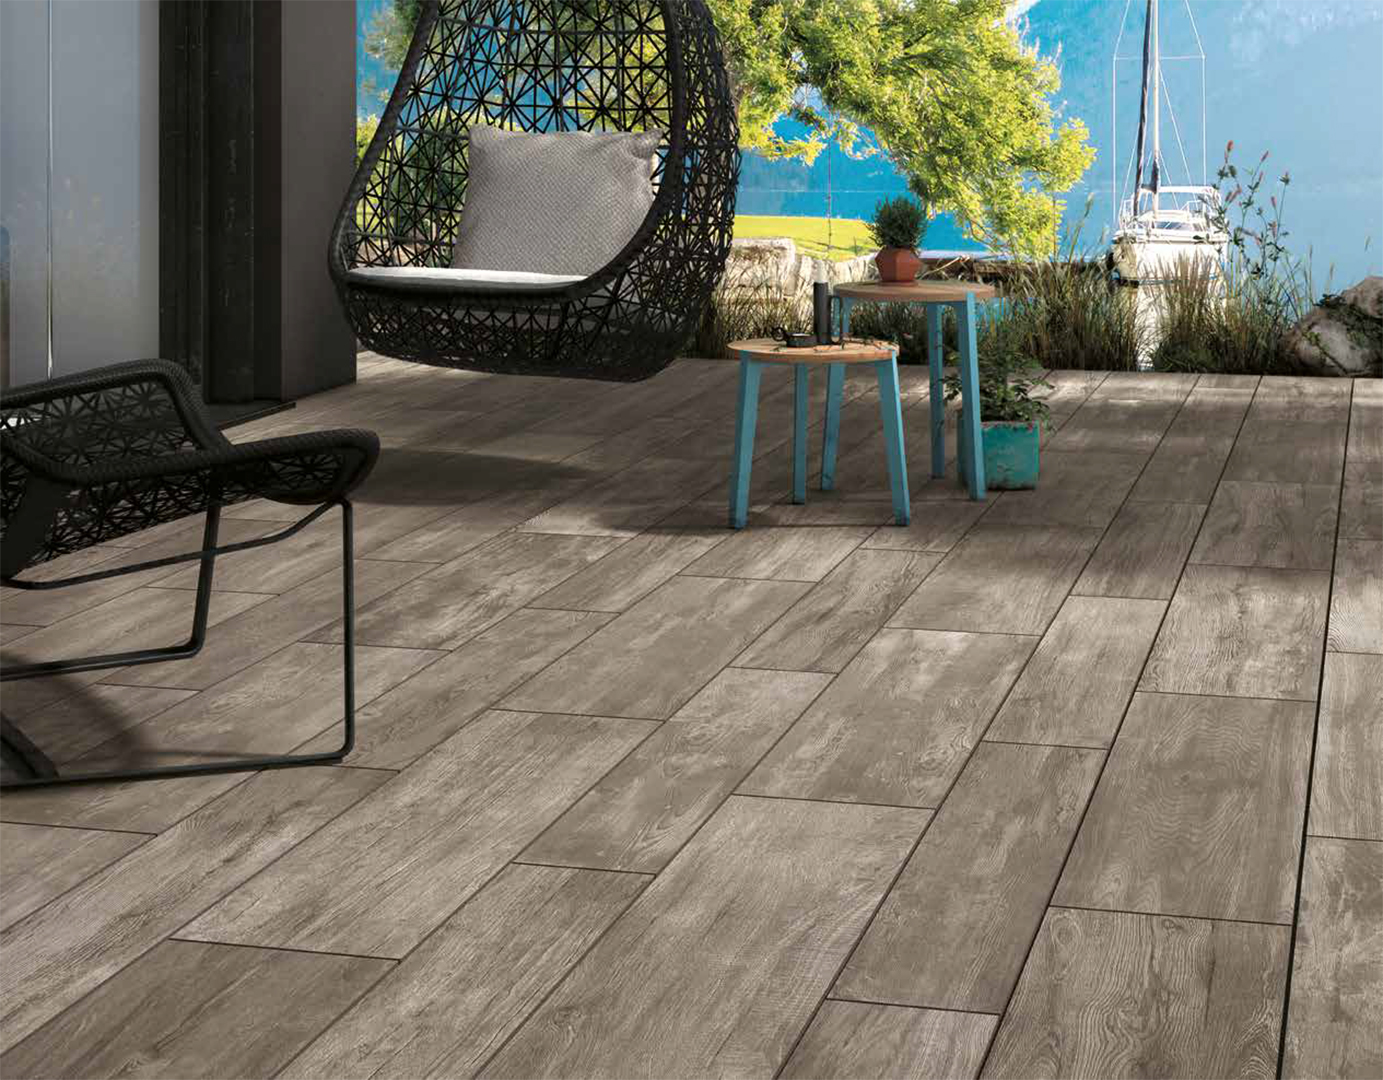 Nau 2 0 the nau 2 0 collection of ceramic tiles mirage for Fliesen outdoor holzoptik